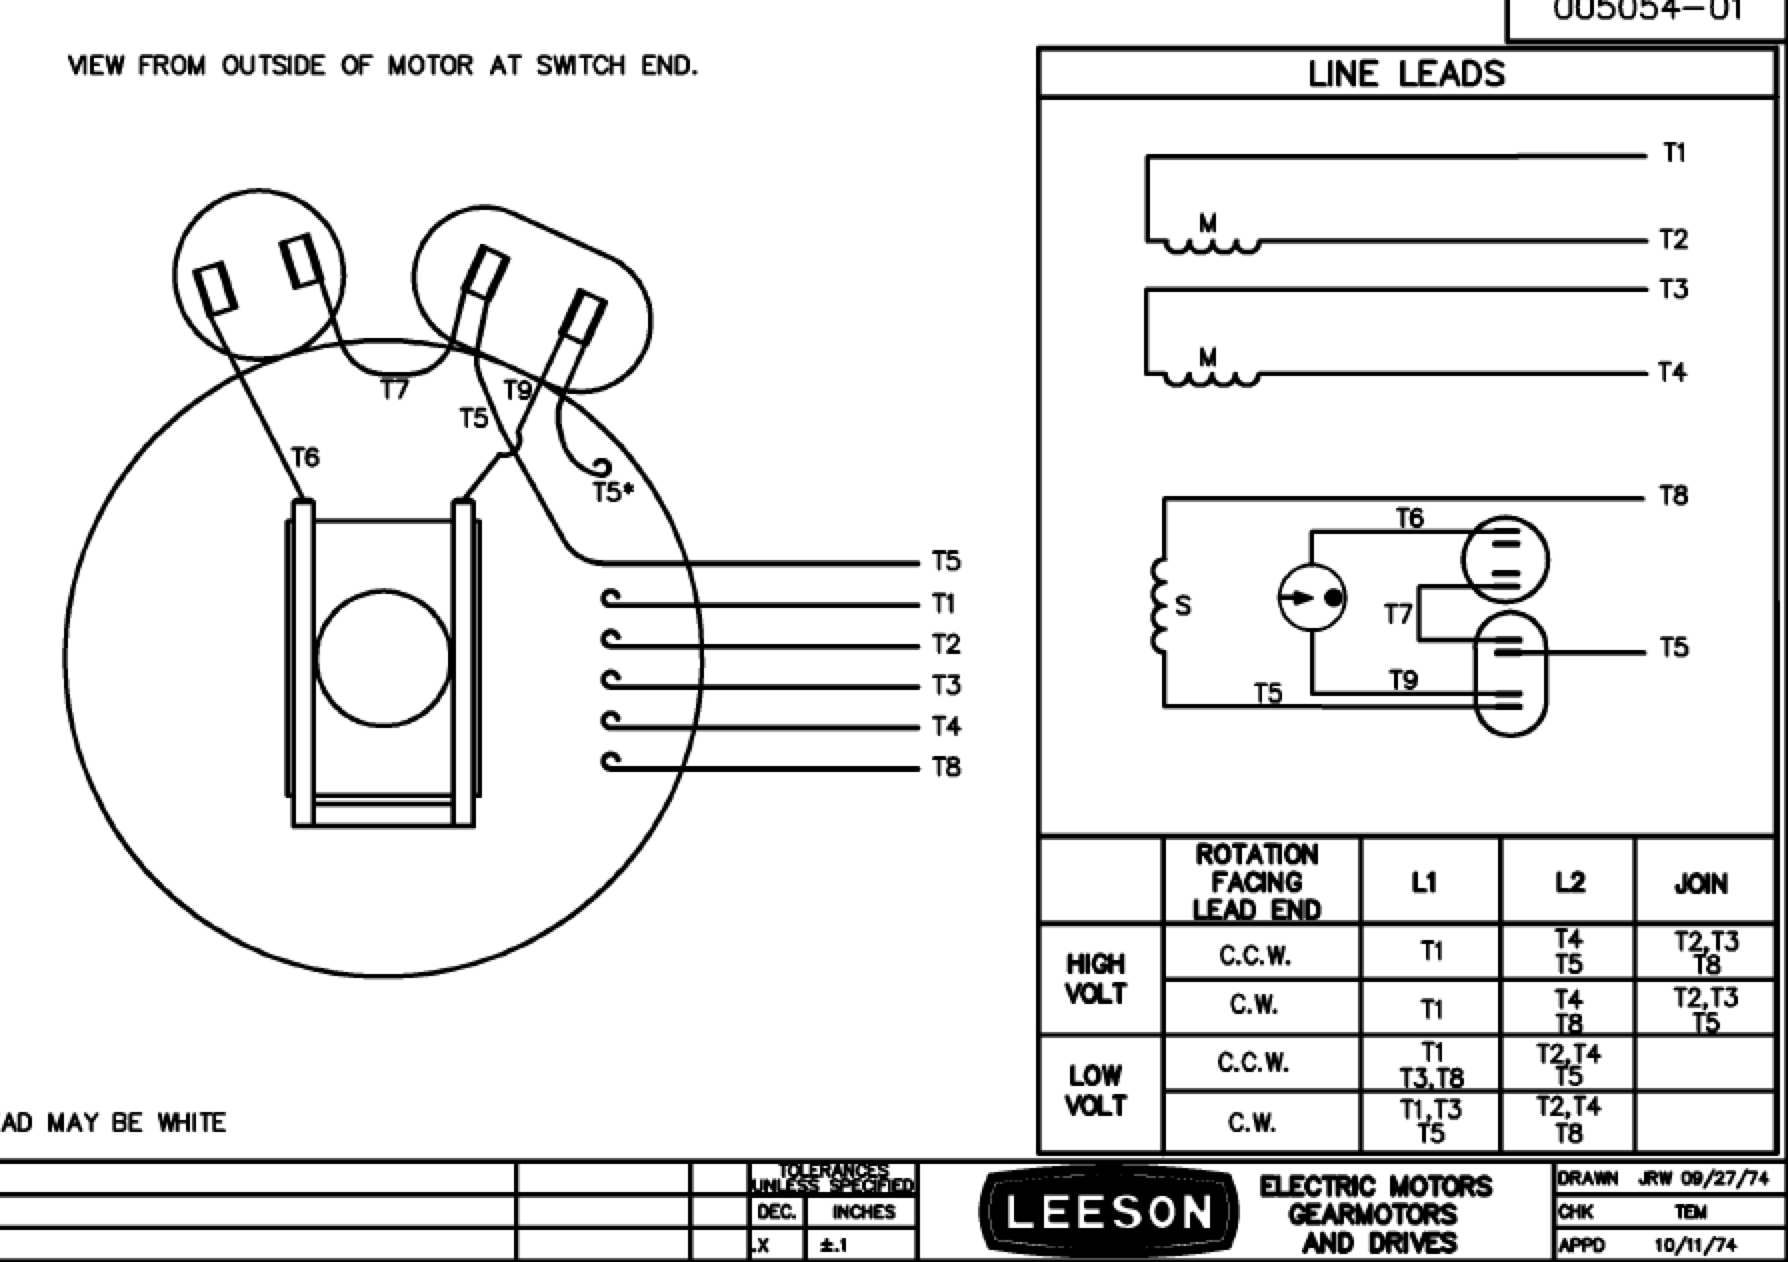 DIAGRAM] I Have A Leeson Electrical Ac Motor Model C6k17fk2h The Wiring  Diagram FULL Version HD Quality Wiring Diagram -  APPDIAGRAMS.ACBAT-MACONNERIE.FRappdiagrams acbat-maconnerie fr